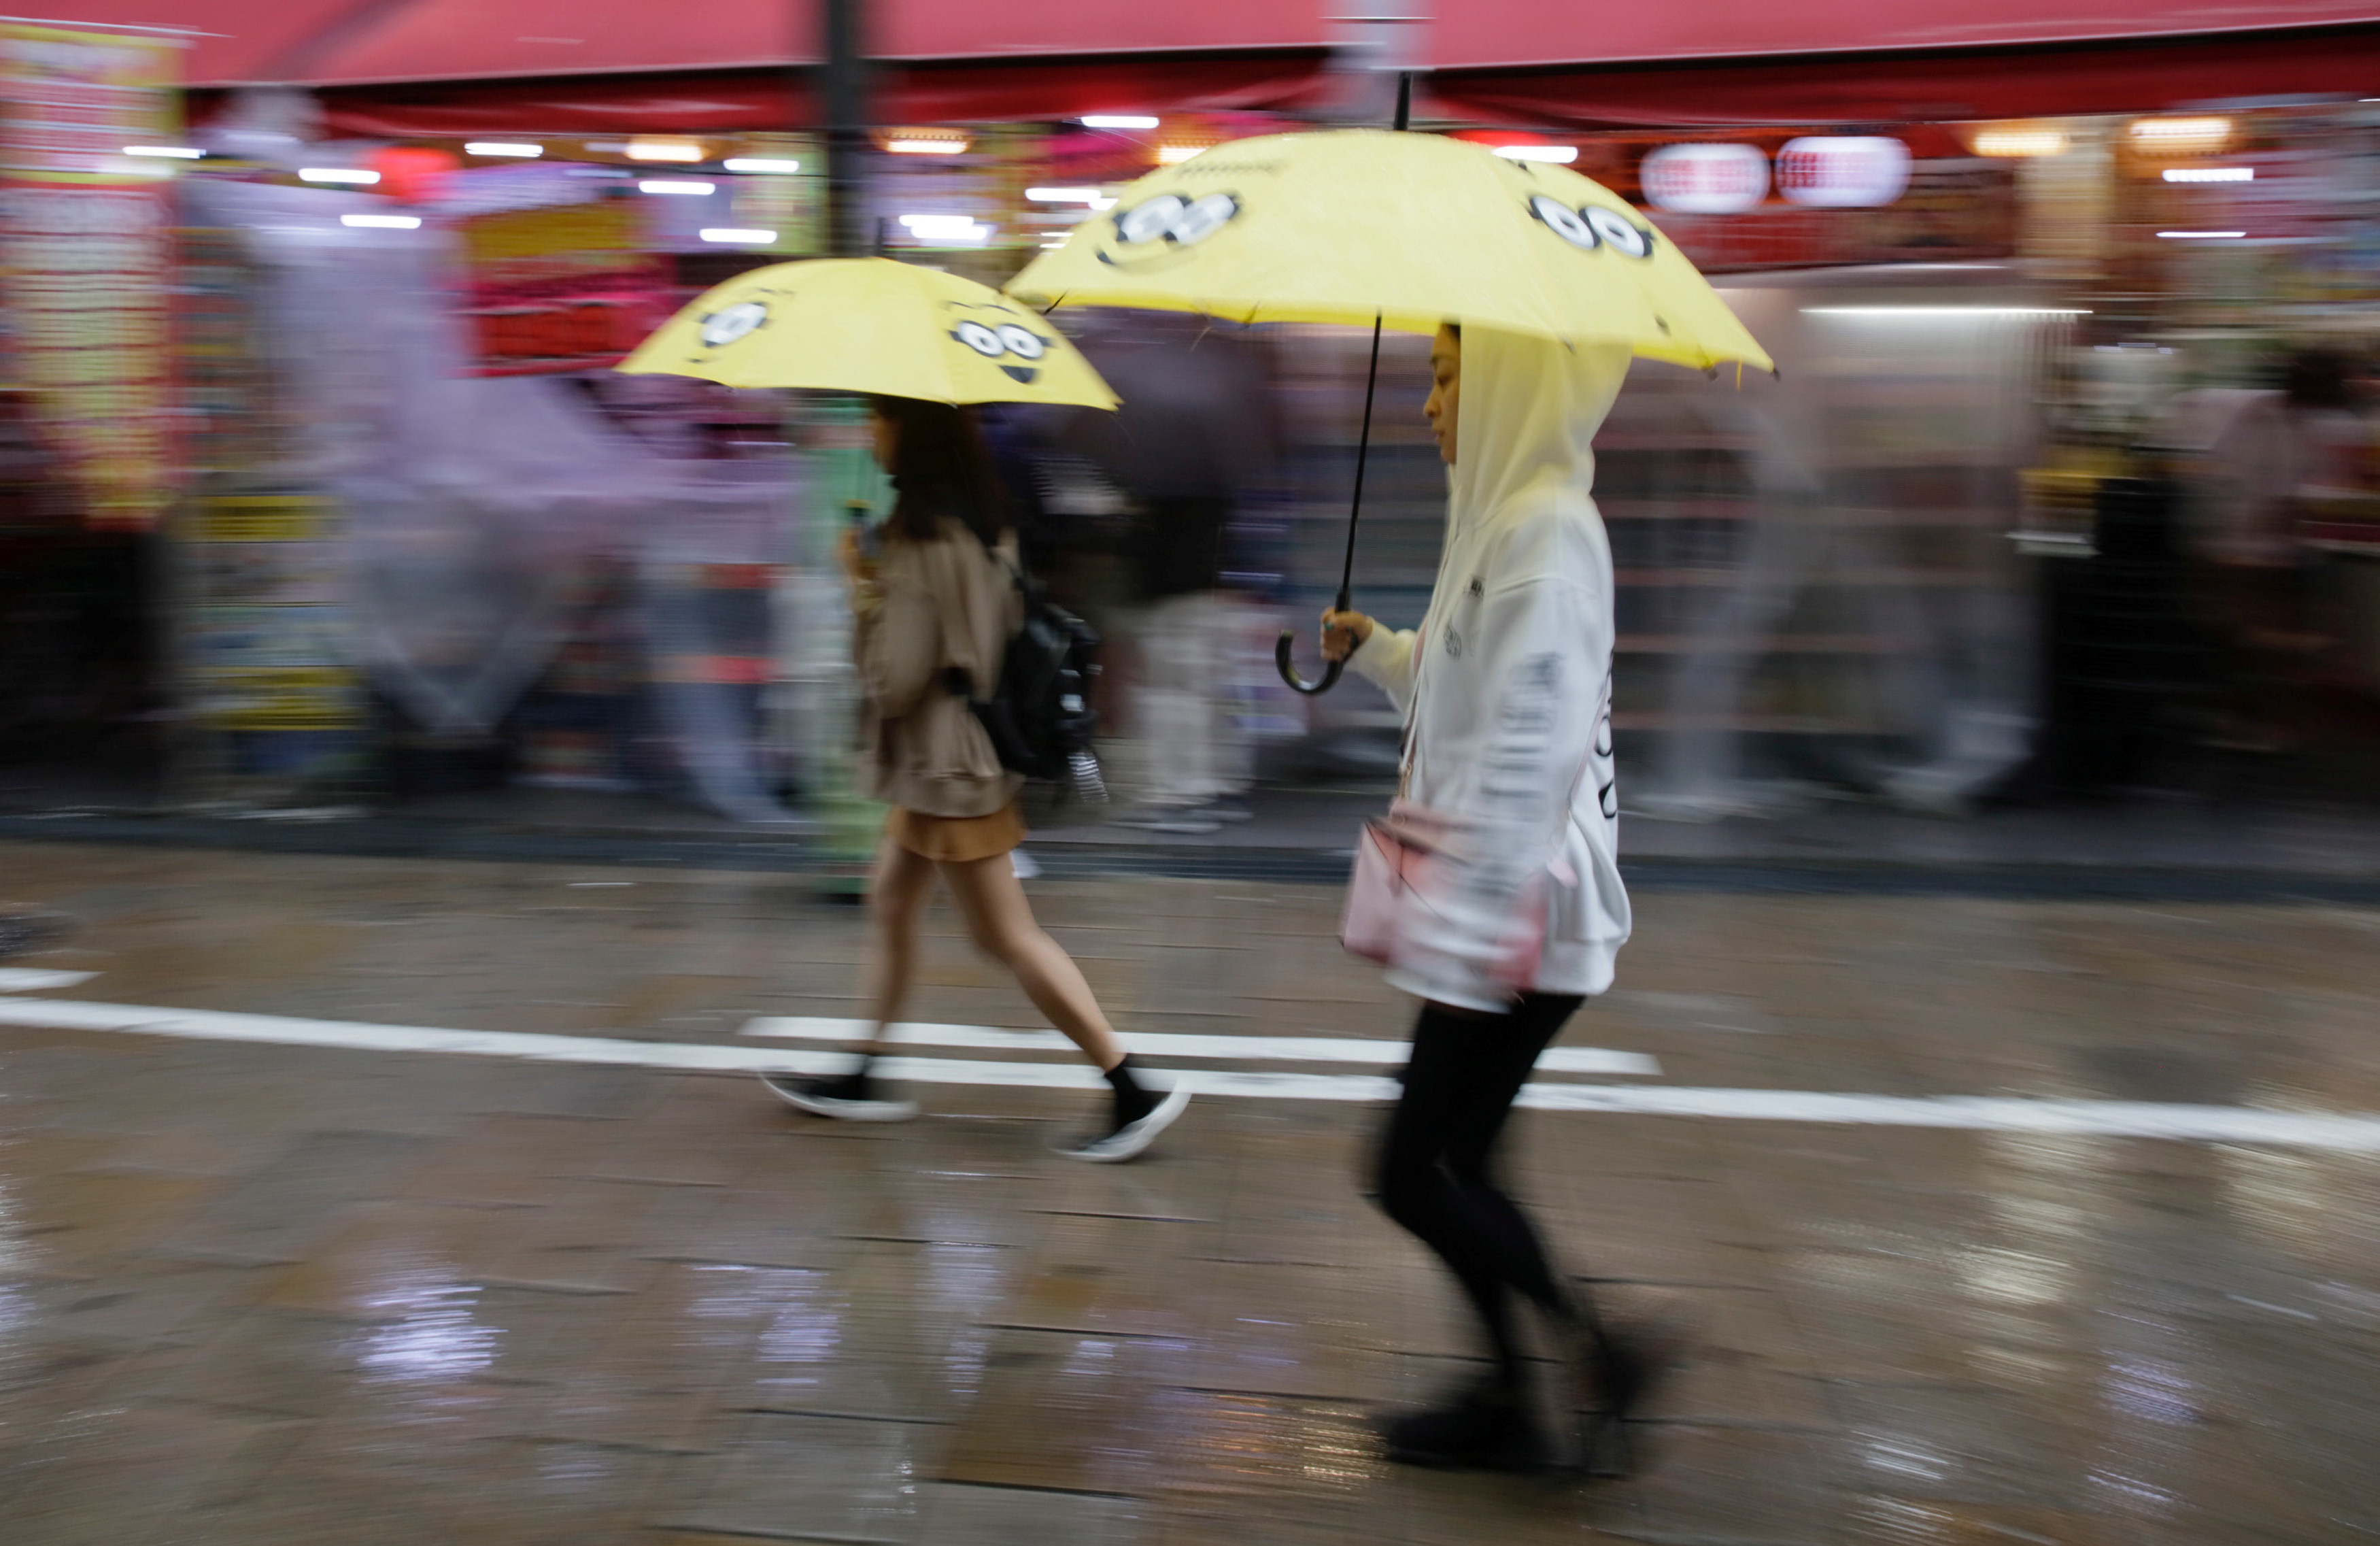 Shoppers walk under umbrellas as Typhoon Lan approaches Japan's mainland, in Osaka, western Japan, October 22, 2017. REUTERS/Thomas White - RC1BF761A190